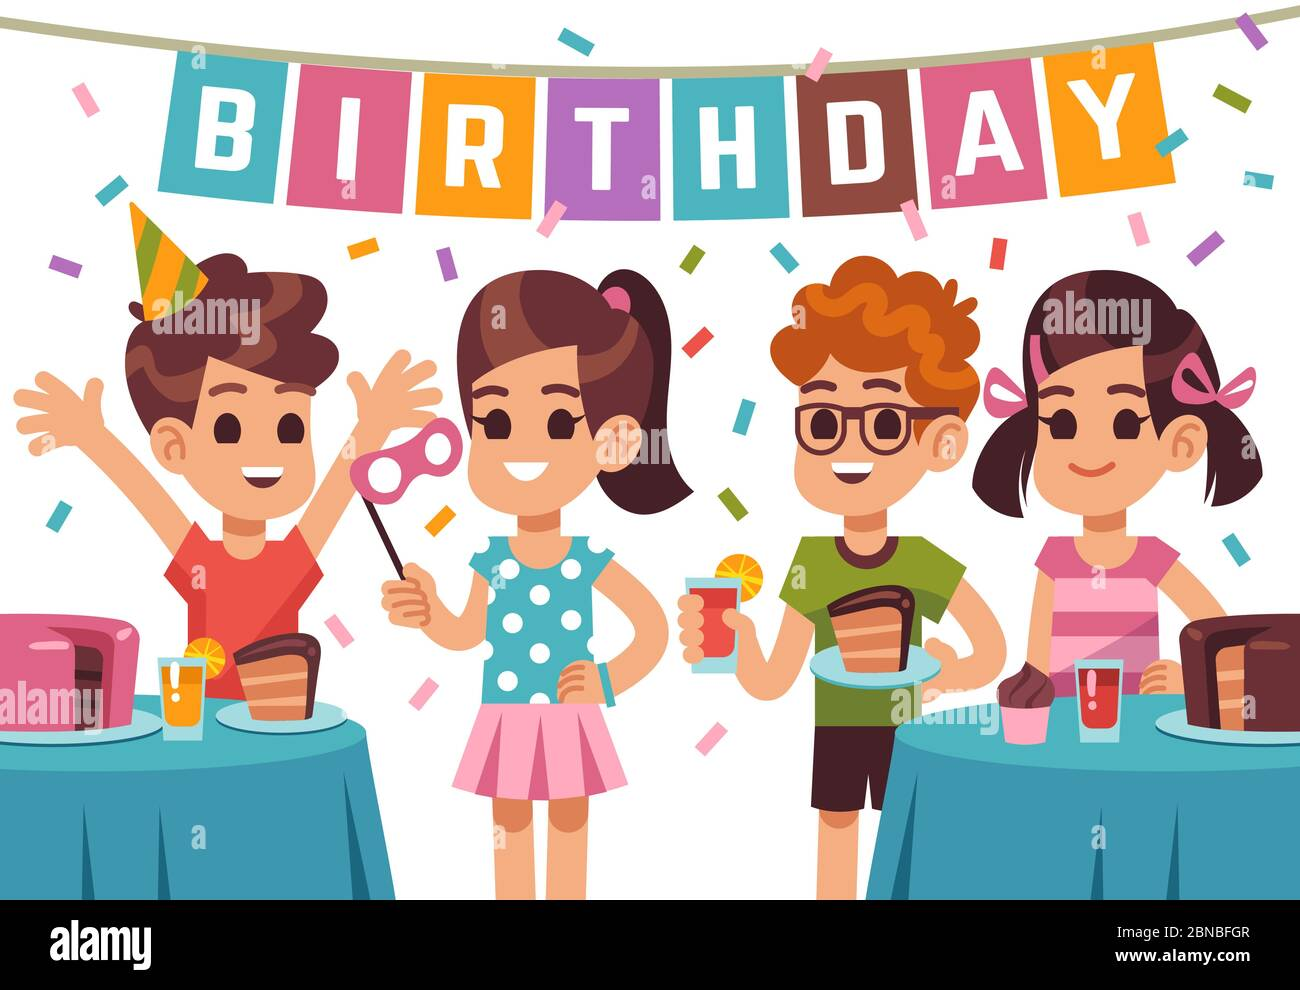 Children Birthday Party Kids Celebrating Anniversary Vector Birthday Background With Cartoon Boys And Girls Illustration Of Anniversary Kids Party Girl And Boy On Birthday Holiday Stock Vector Image Art Alamy